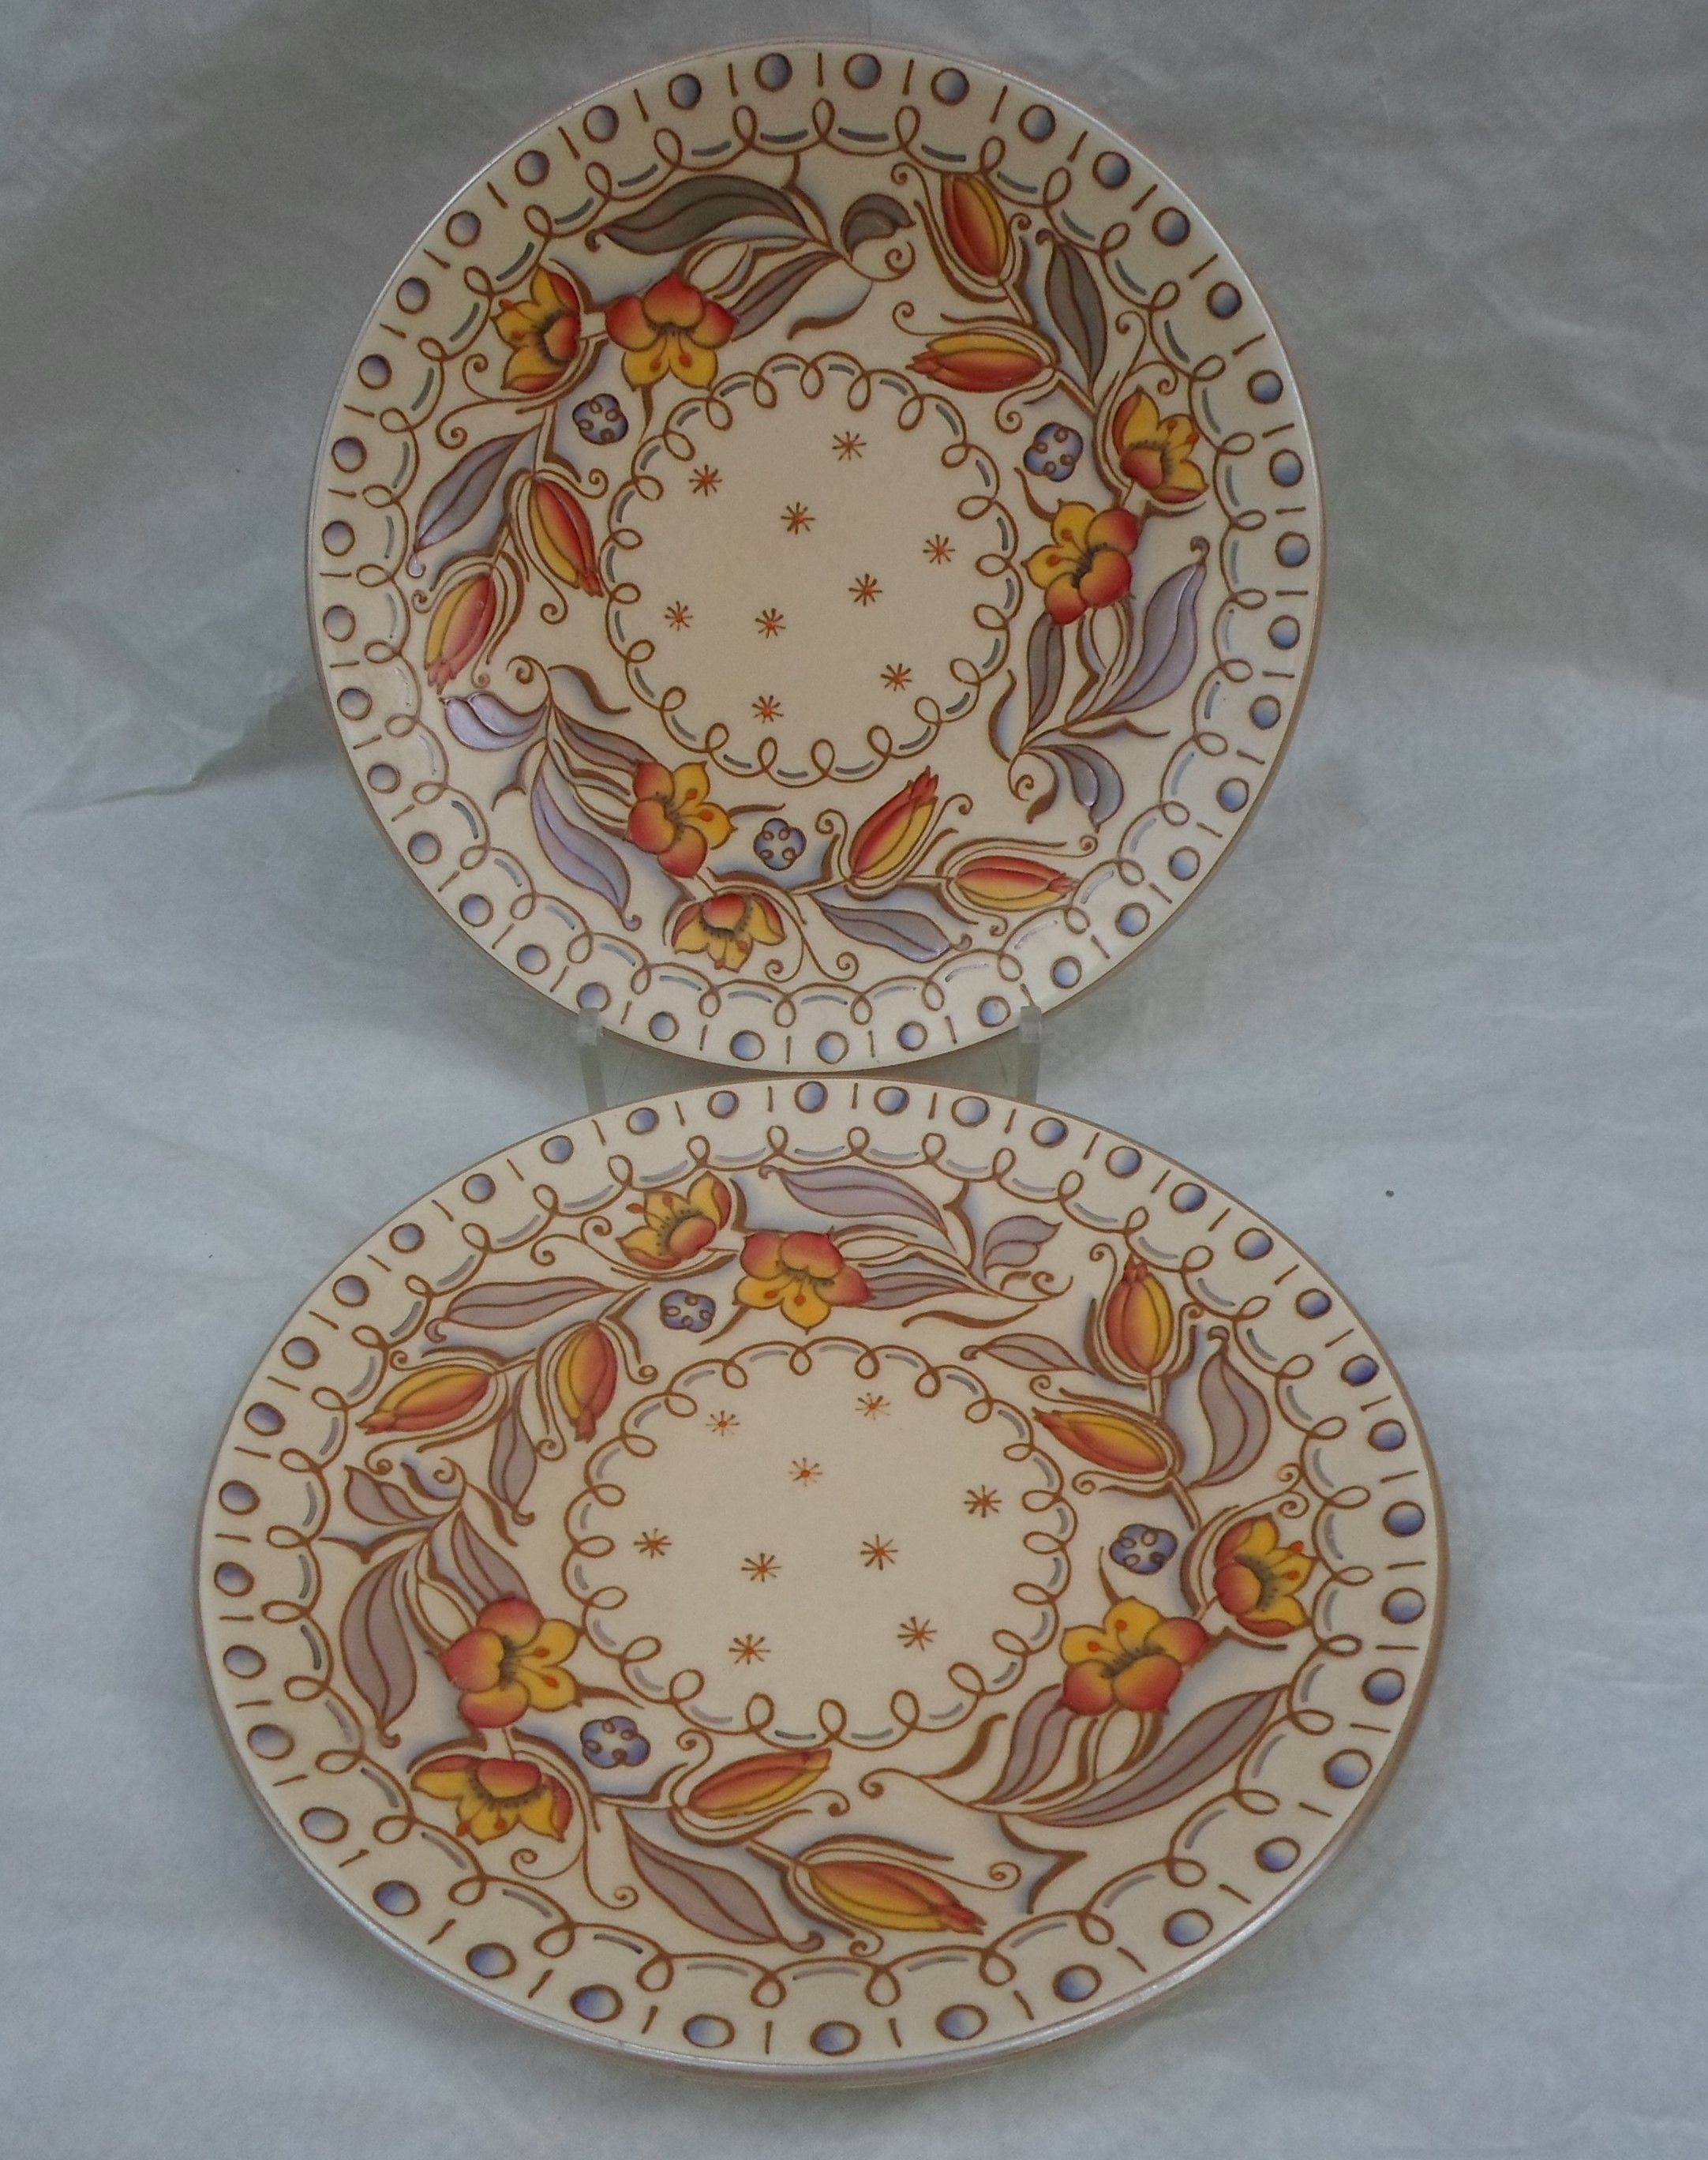 Two 1940s HJ Wood Bursleyware chargers, in the TL95 pattern, designed by Eddie Sambrook (after Charlotte Rhead), having a tube-lined decoration of stylized flowers and leaves on a buff ground, printed and tubed marks to the bases, each 30.5cm diameter